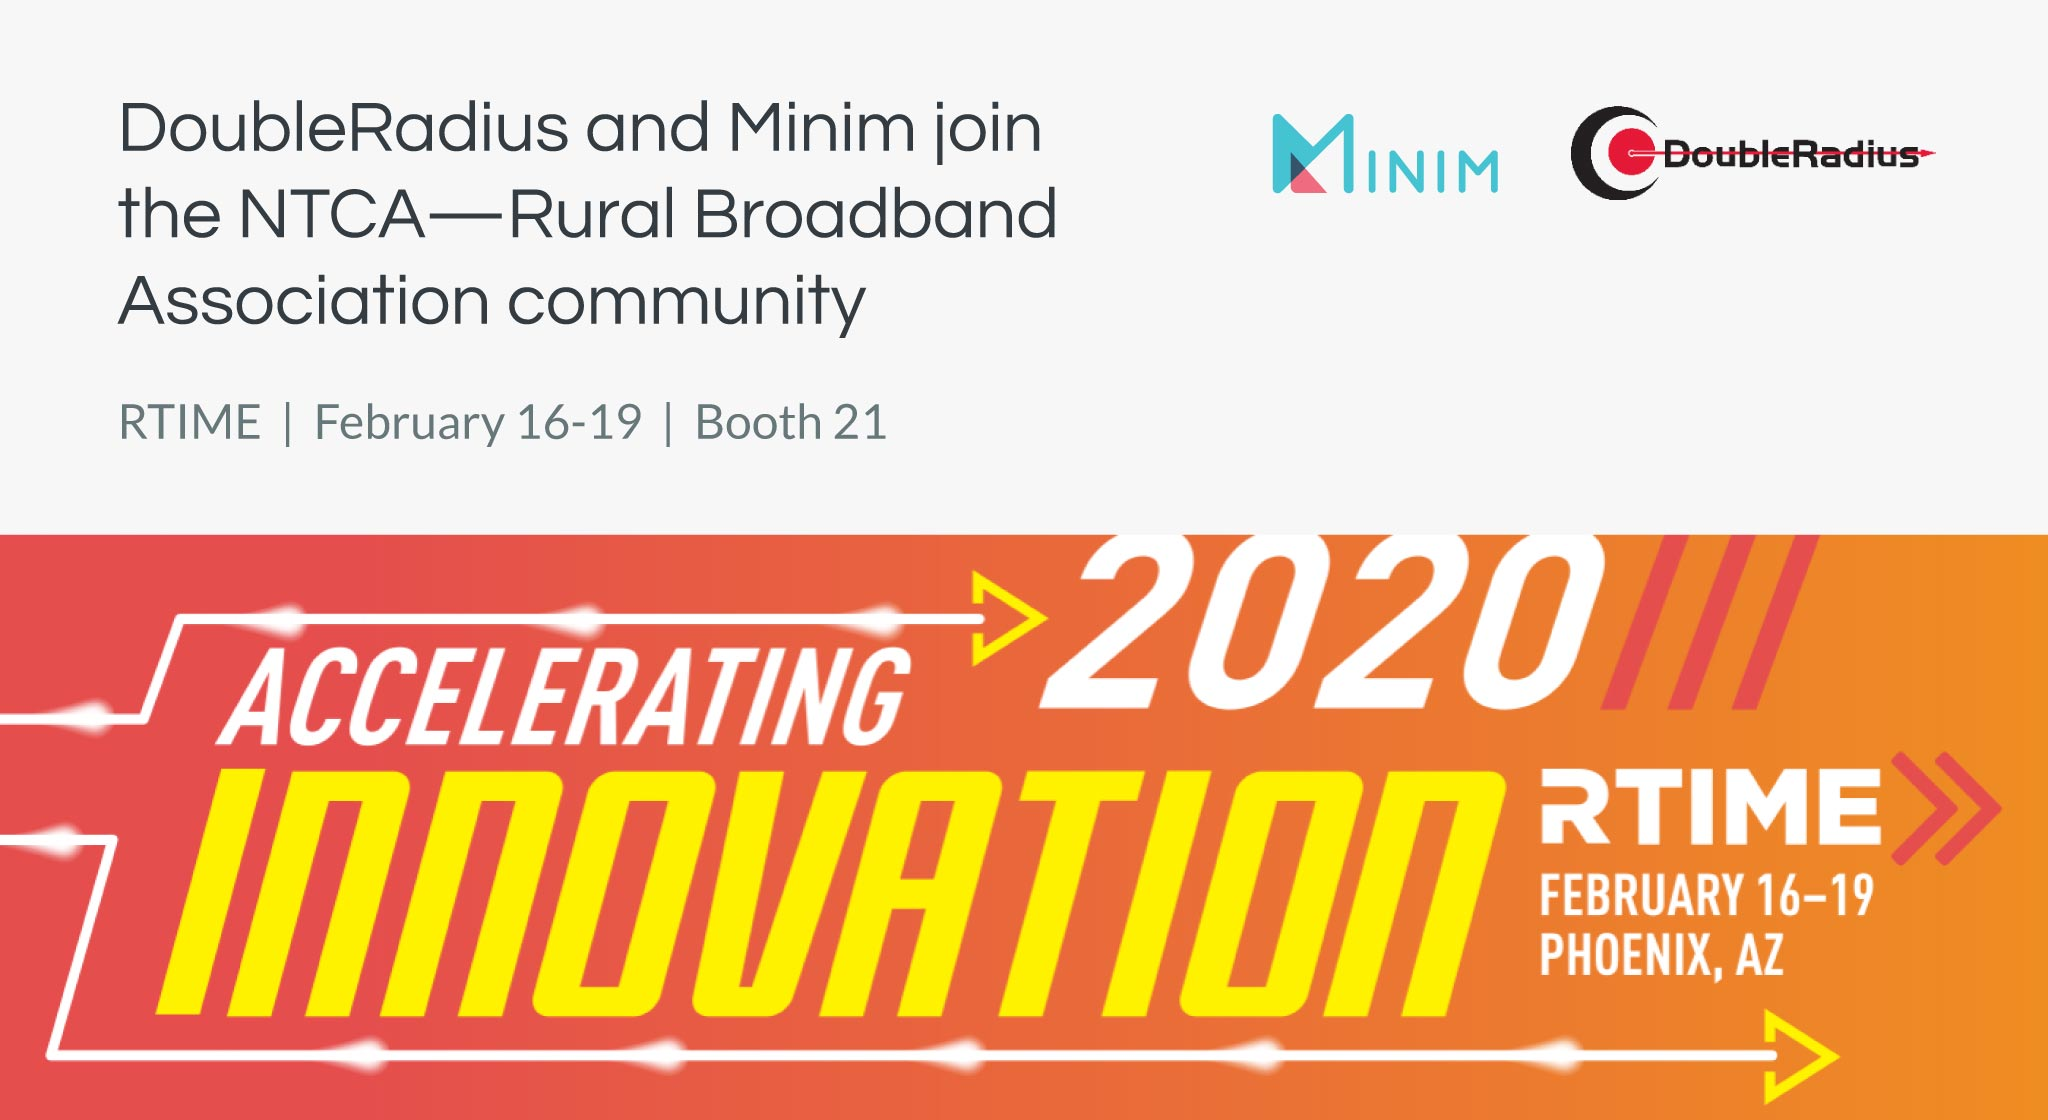 DoubleRadius and Minim join the NTCA—Rural Broadband Association community